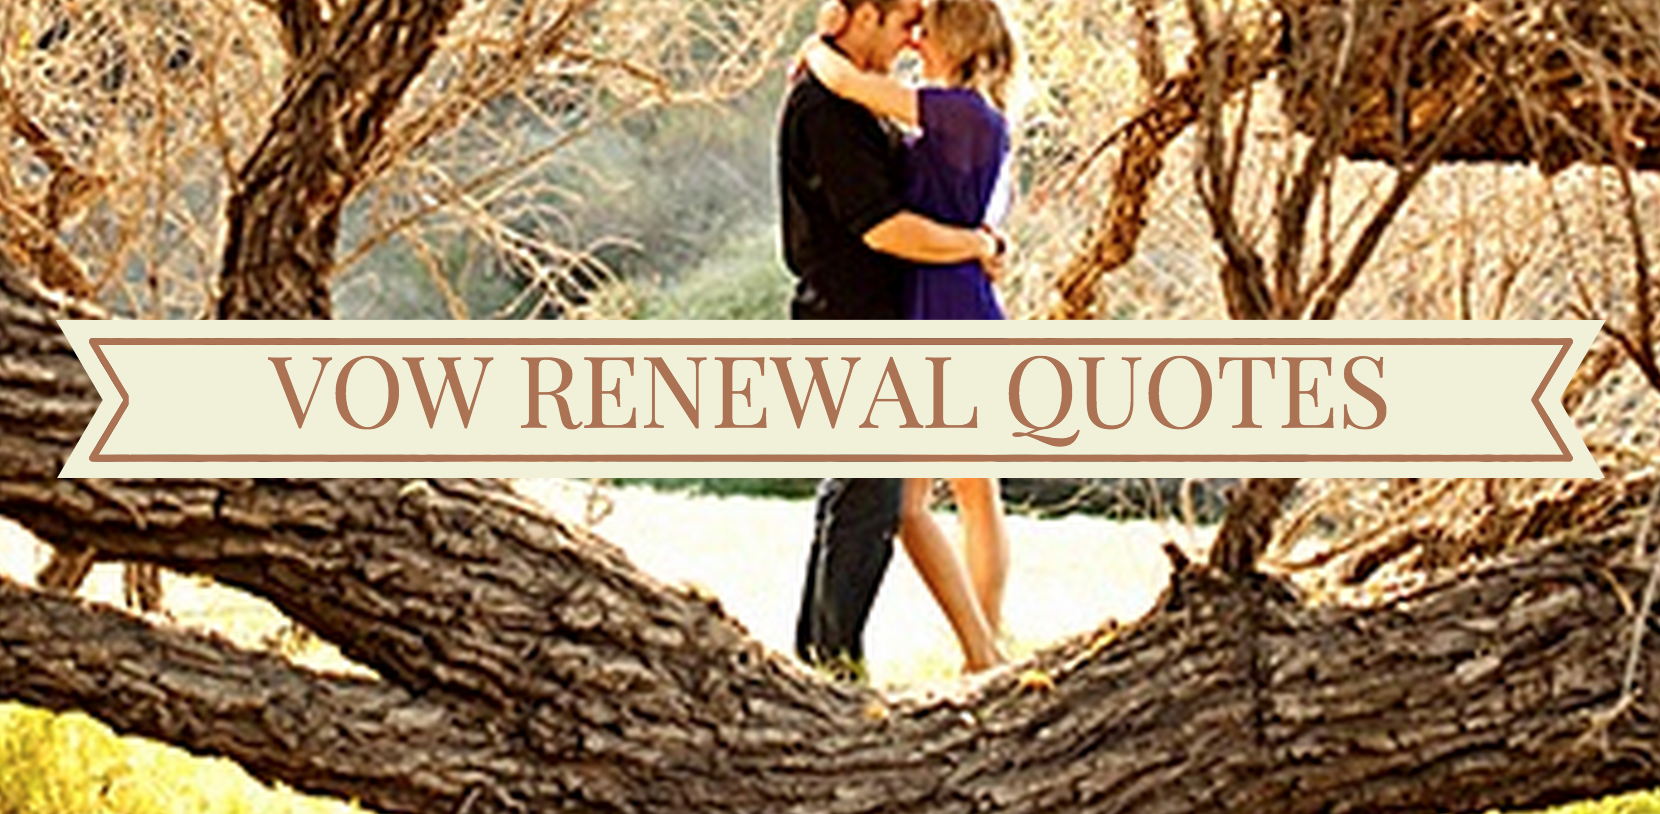 Vow Renewal Quotes Vow Renewals Pinterest Wedding Renewal Vows